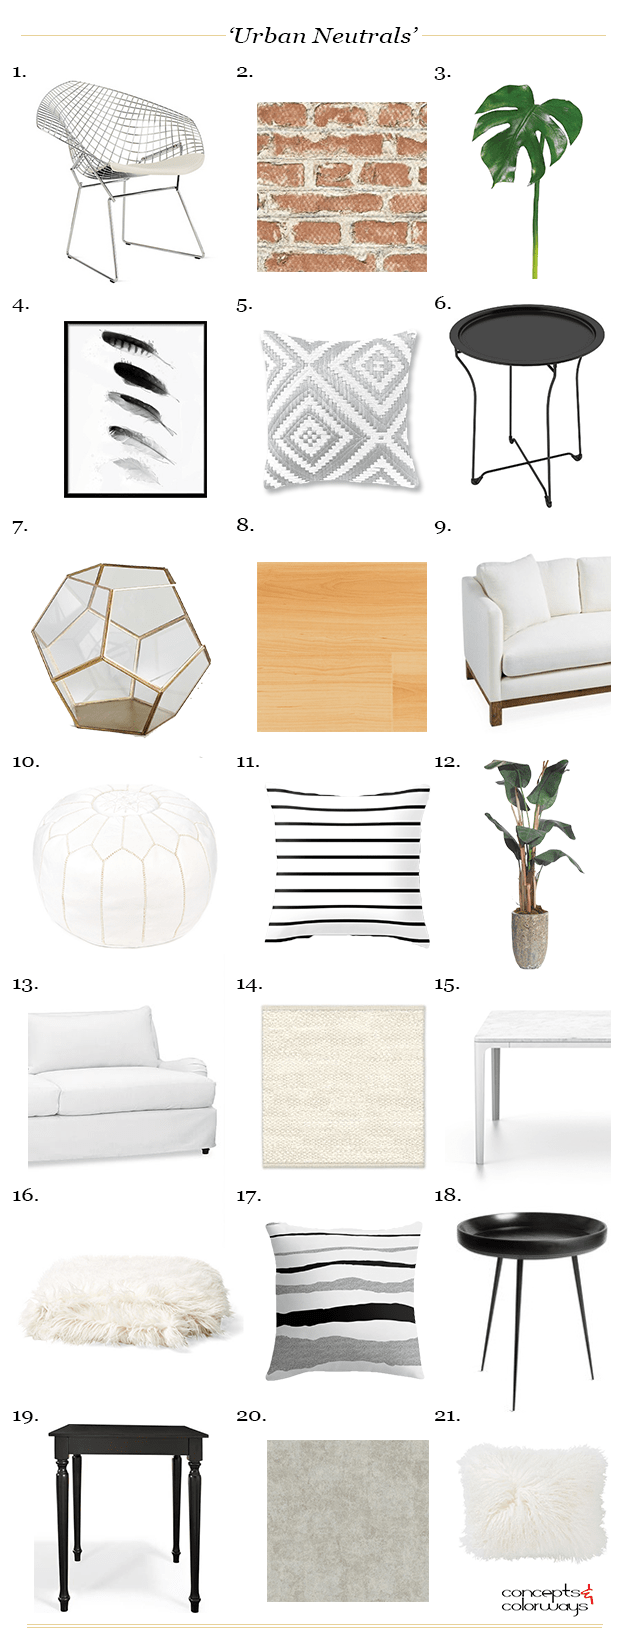 urban neutrals interior product roundup get the look